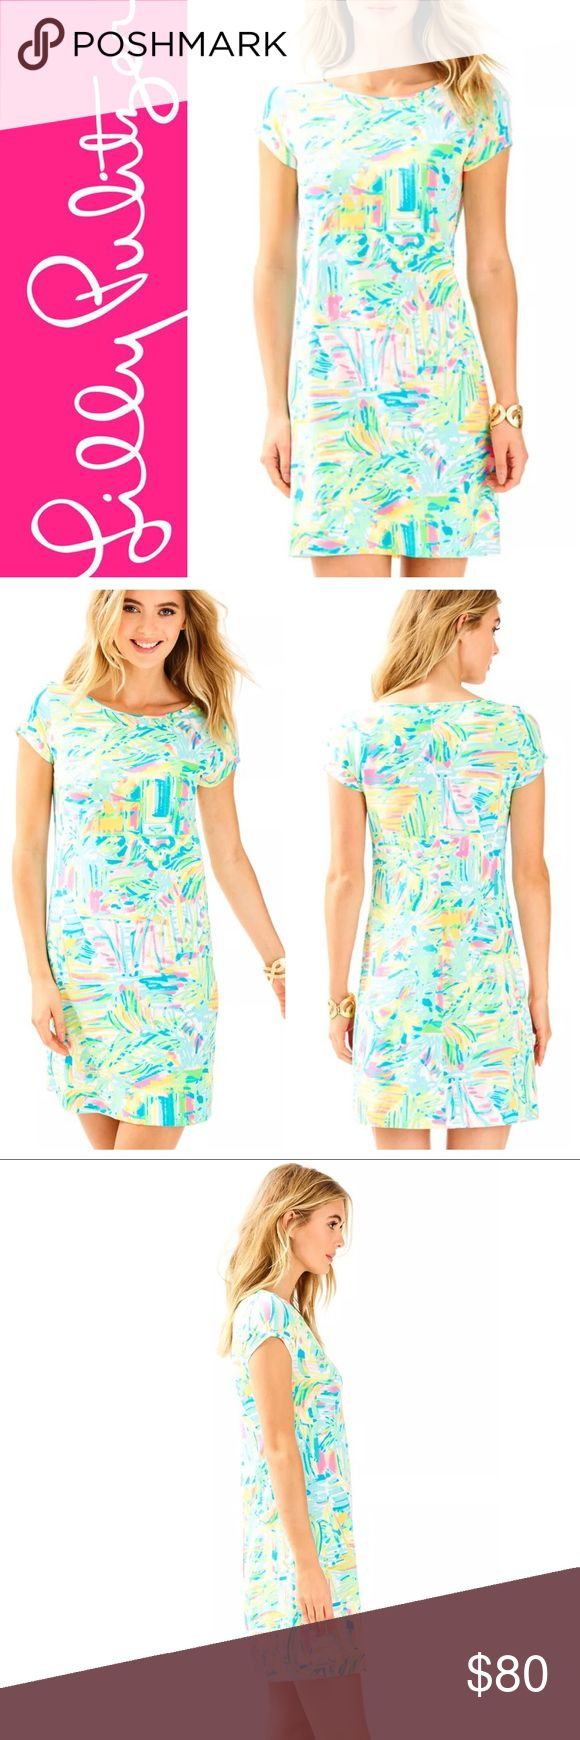 """{Lilly Pulitzer} Sea Salt Sun Short Sleeve Marlowe • Brand new with tags attached.  • Lilly Pulitzer Short Sleeve Marlowe Dress.  • Size medium.  • Multi Sea Salt and Sun print.  • Beautiful neon colors and so tropical!  • This is a printed short sleeve boatneck t shirt dress.  • Super cute and comfy.  • 100% pima cotton.  • Per Lilly's measurements: 35"""" from the top of the shoulder to the hem.  • Retail: $100 • Bundle your likes for a special offer!✨ • Instagram: @corals.closet Lilly…"""